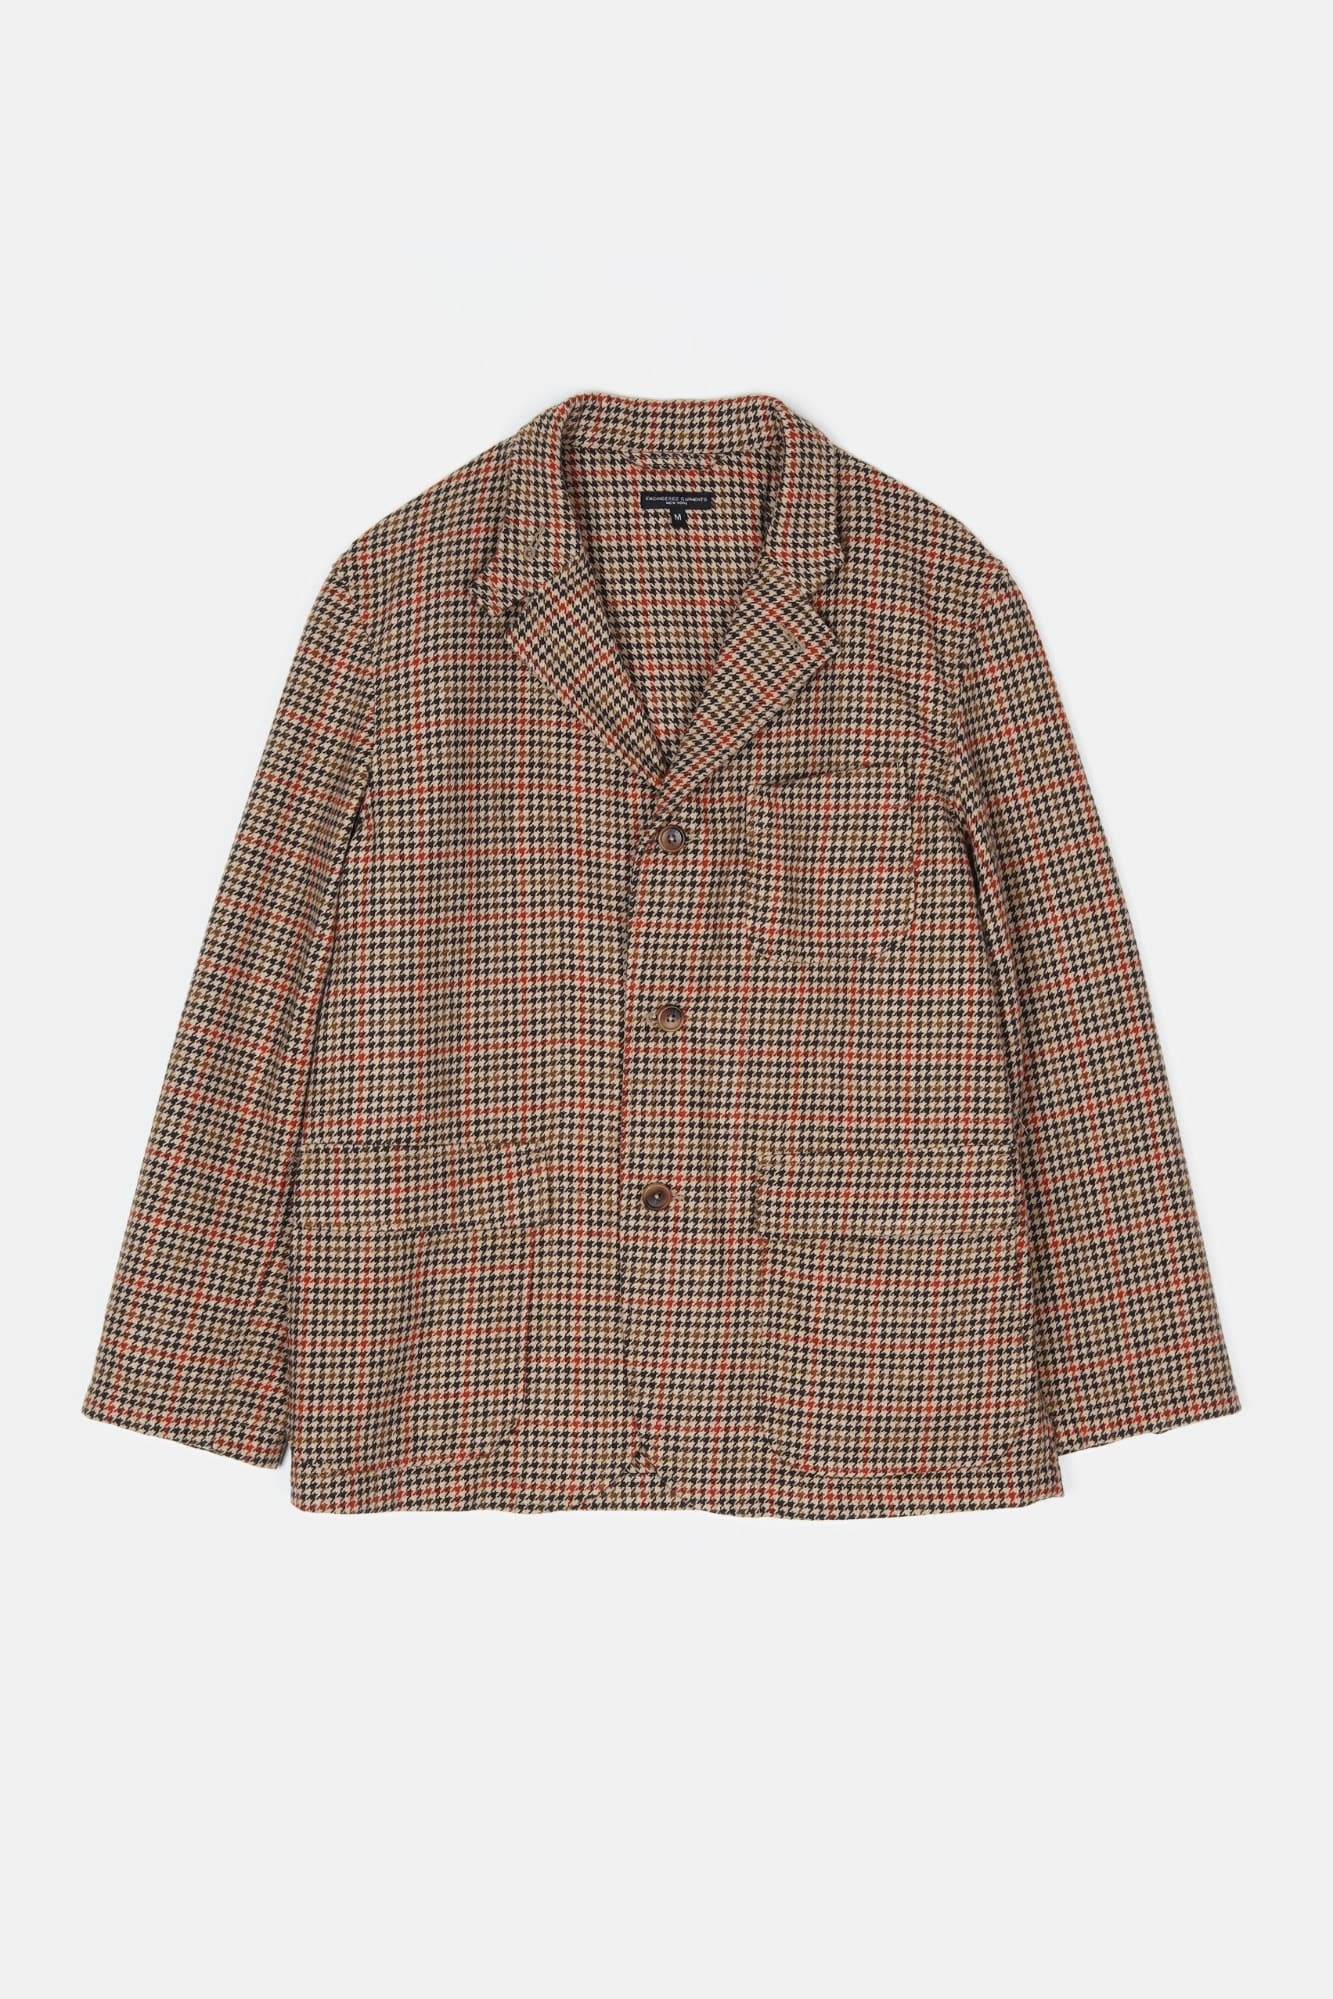 "ENGINEERED GARMENTS Loiter Jacket ""Tan/Orange Wool Big Gunclub Check"""